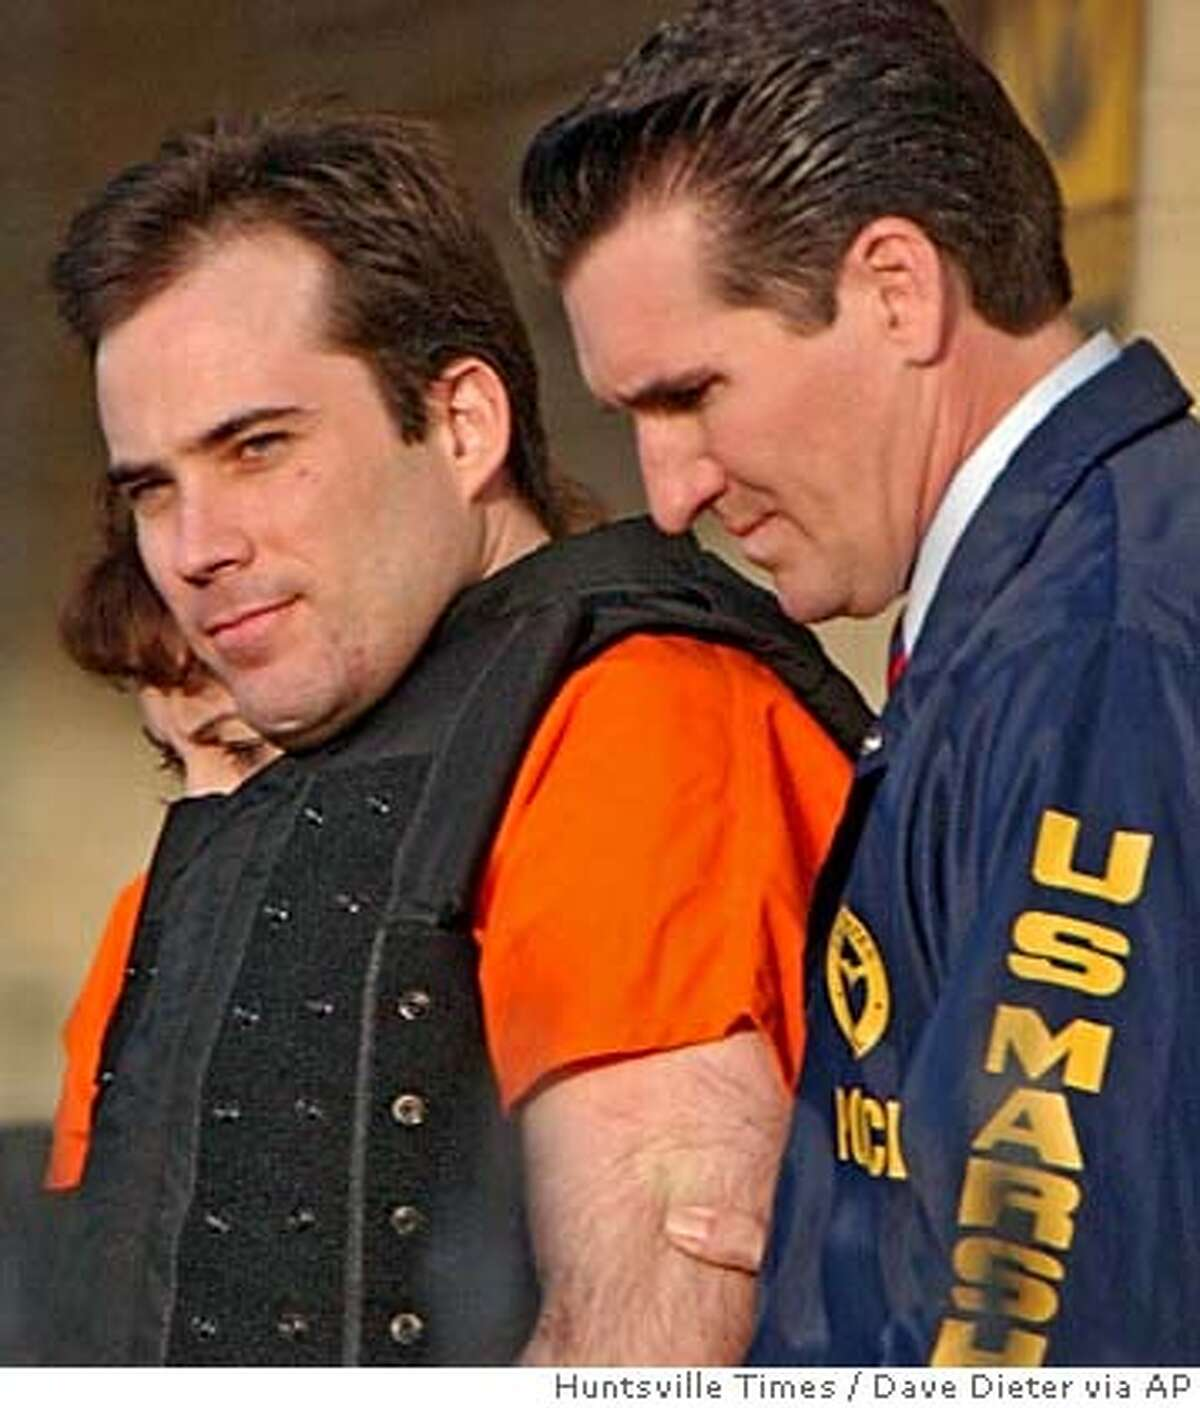 **FILE**This is a March 29, 2005 file photo of Eric Rudolph being led by authorities from a federal courthouse in Huntsville, Ala. Rudolph, who admitted setting deadly explosions in Birmingham and Atlanta, faces sentencing hearing Monday, July 18, 2005. (AP Photo/Huntsville Times, Dave Dieter) THIS IS A MARCH 29, 2005 FILE PHOTO.